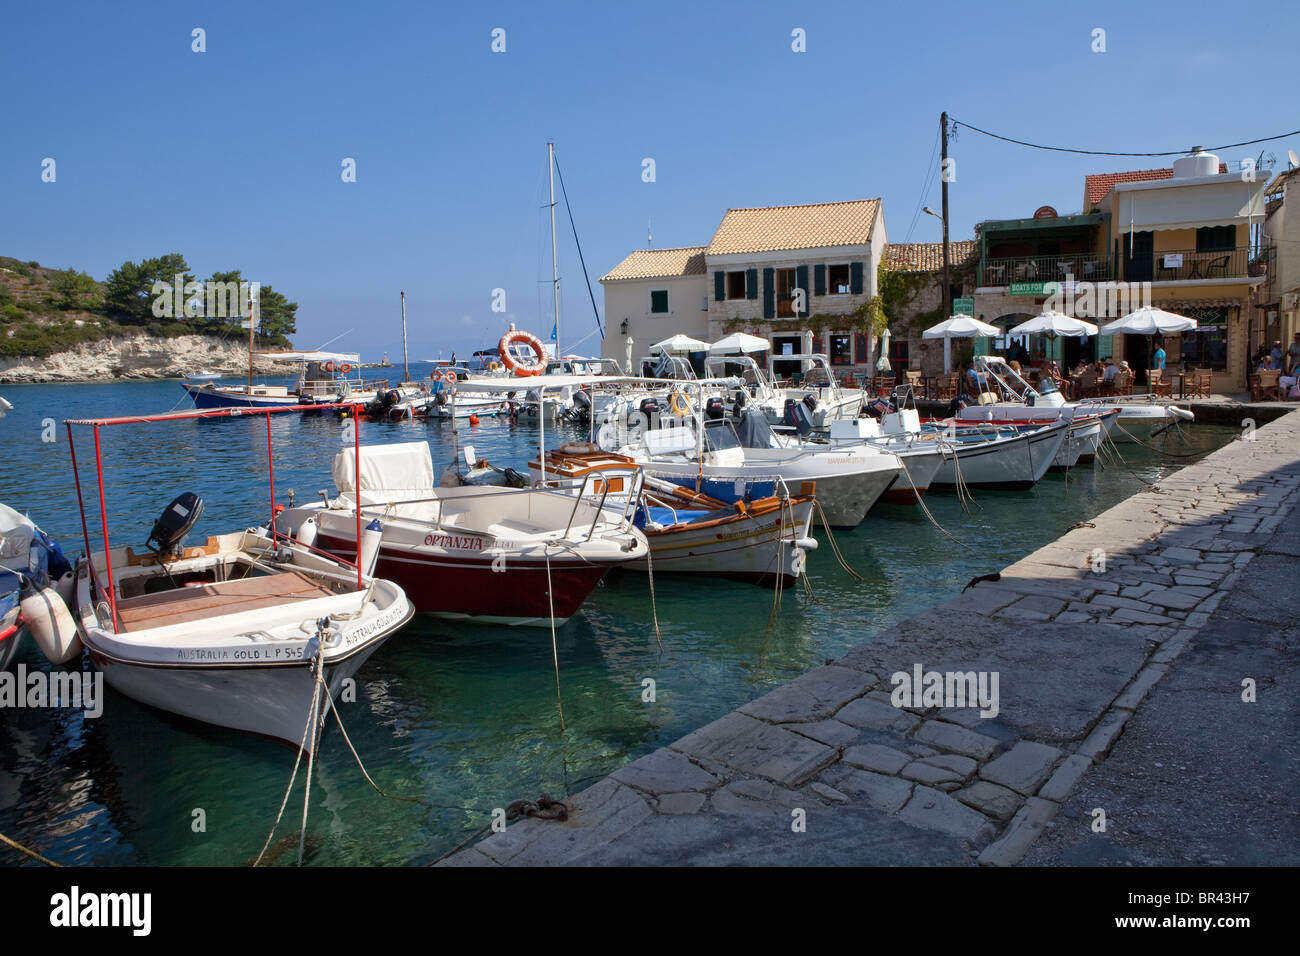 Boats moored in Loggos Harbour, Paxos - Stock Image